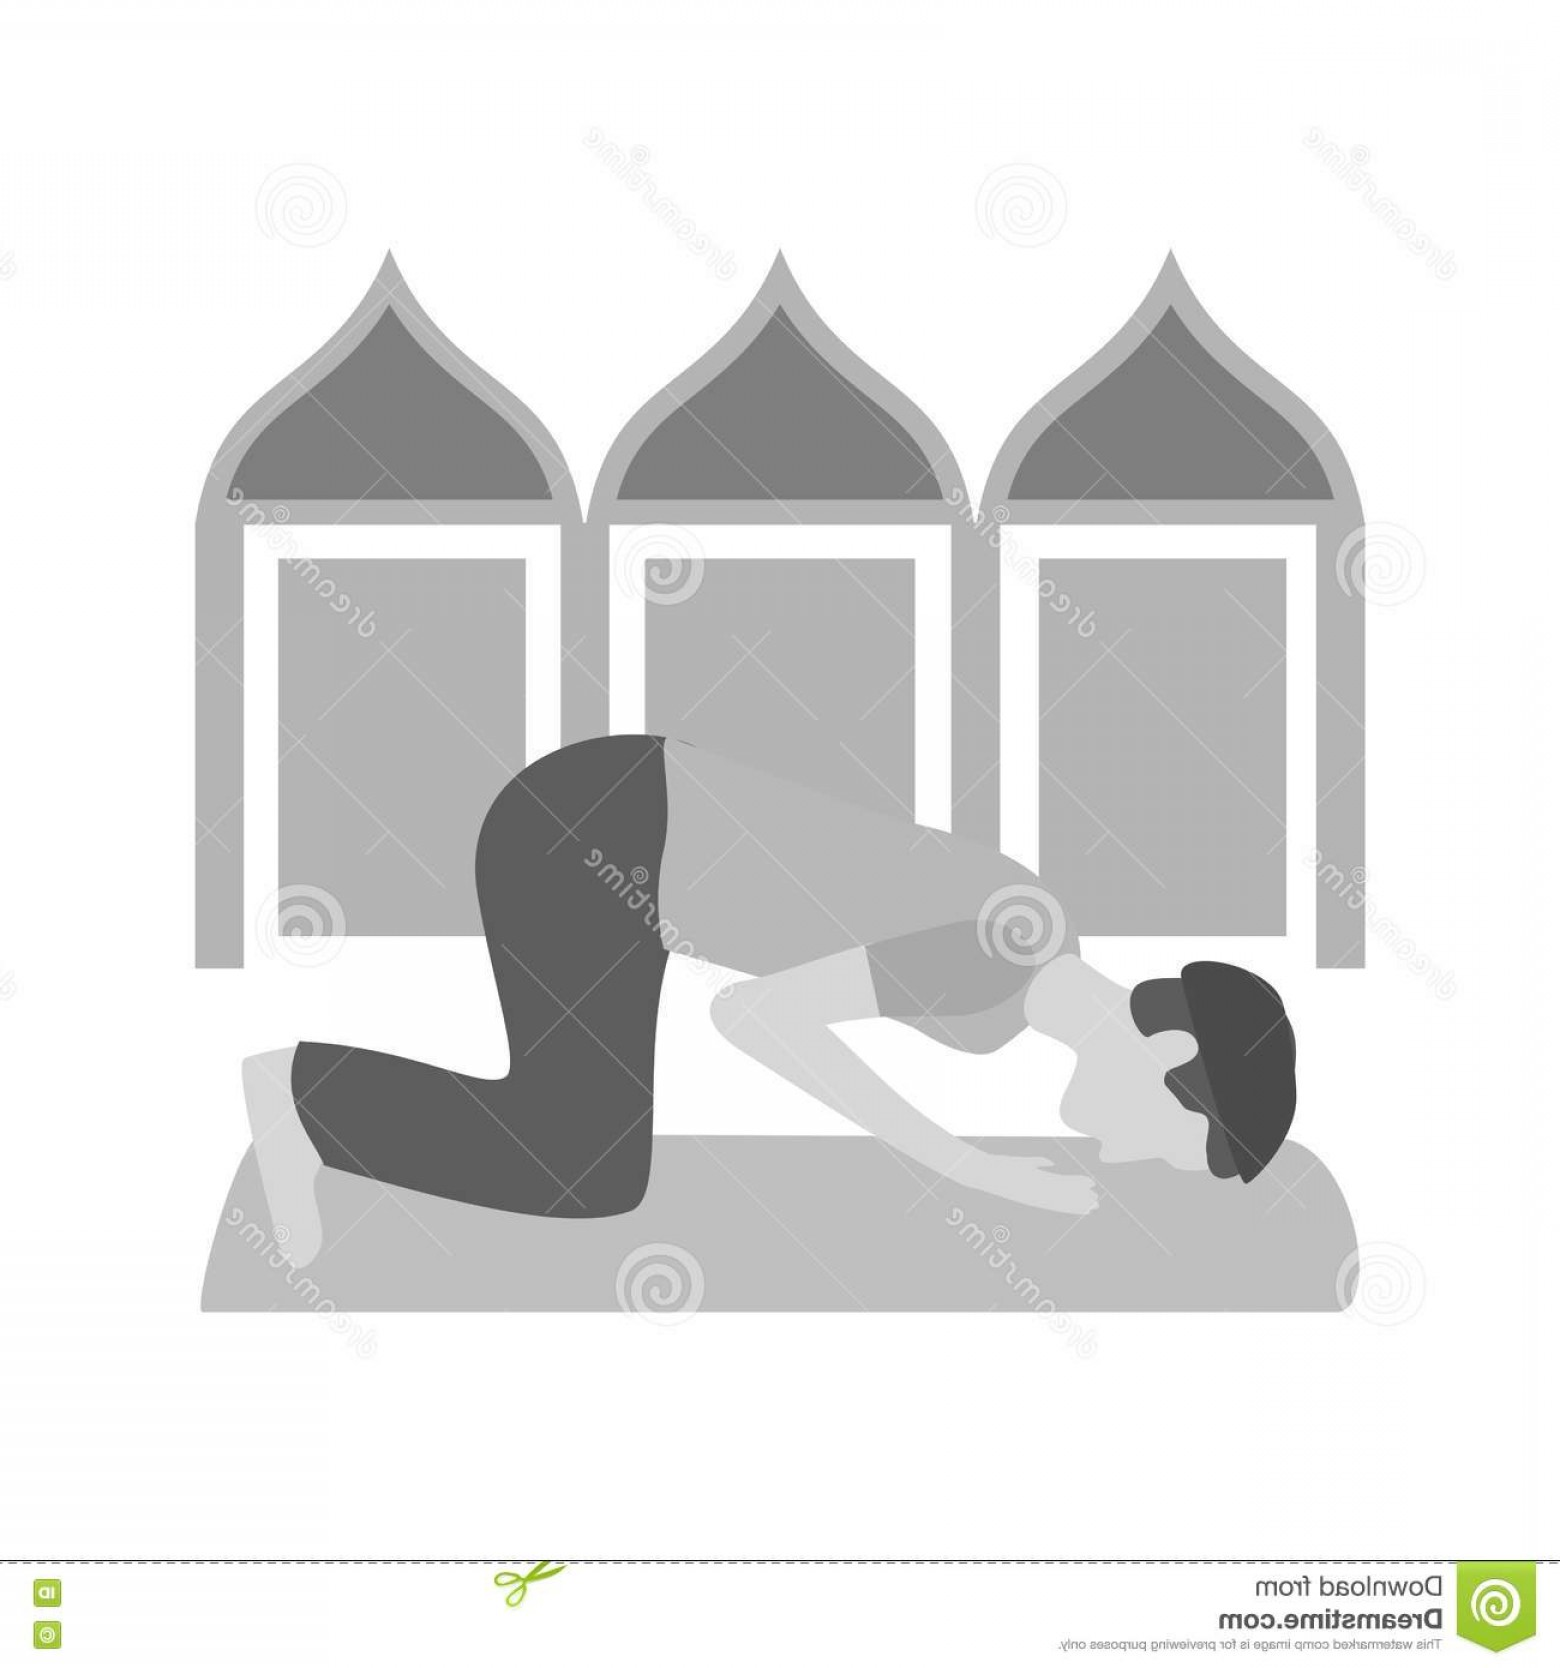 Praying Cowboy Vector: Stock Illustration Muslim Praying Pray People Icon Vector Image Can Also Be Used People Suitable Web Apps Mobile Apps Print Media Image